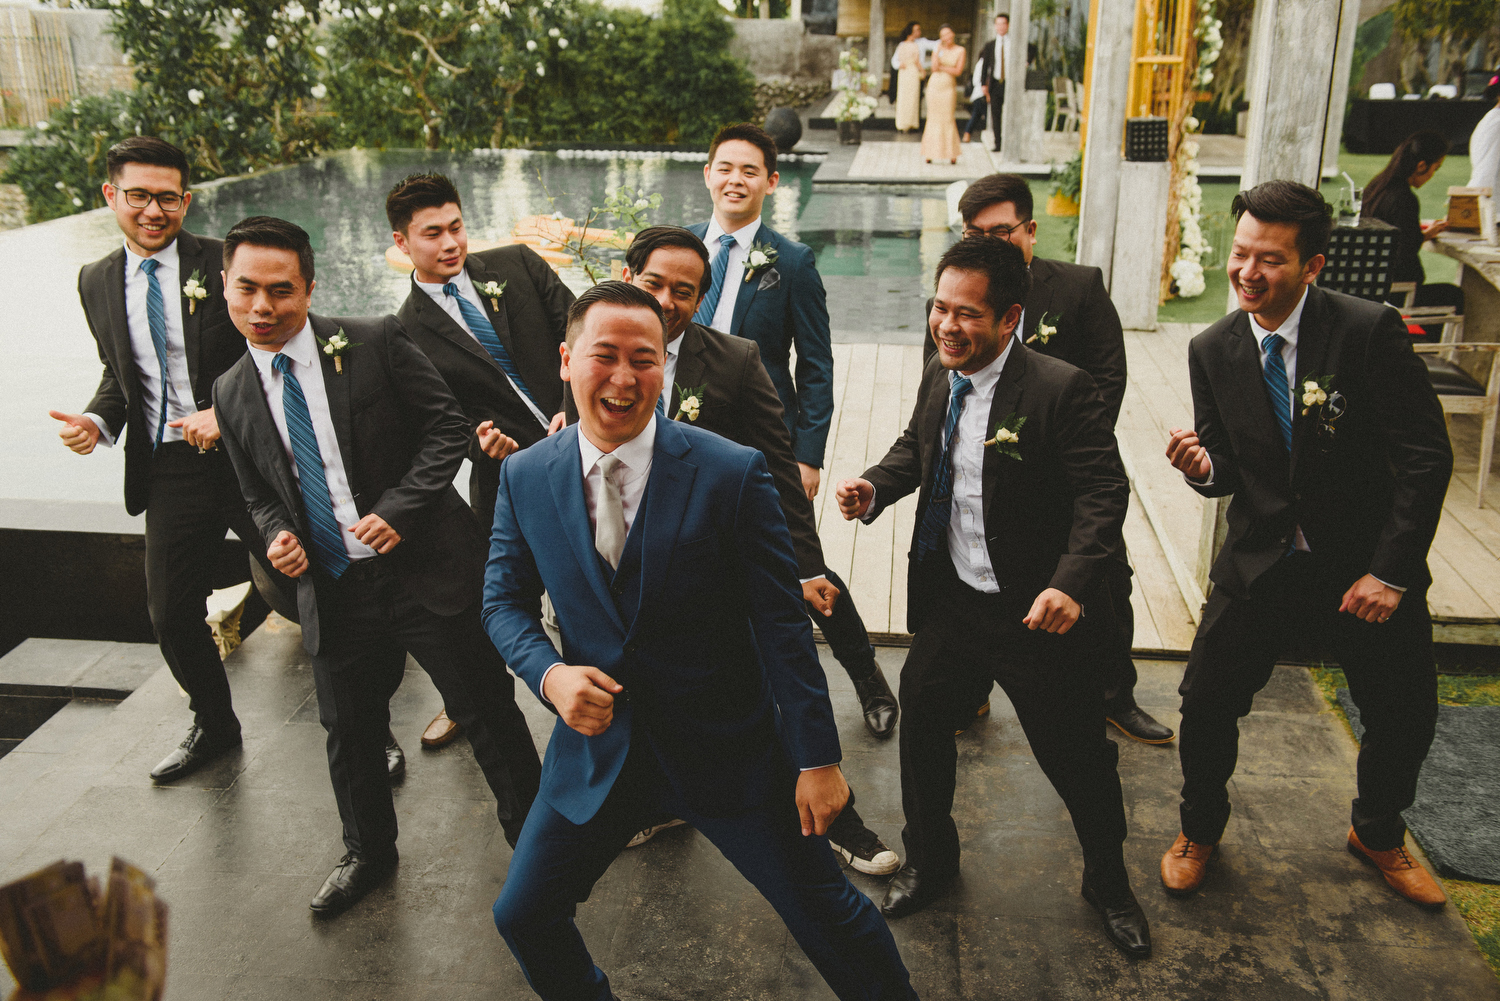 wedding-helise-risky-weddinginbali-khayanganestate-diktatphotography-baliweddingdestination-baliphotographer-47